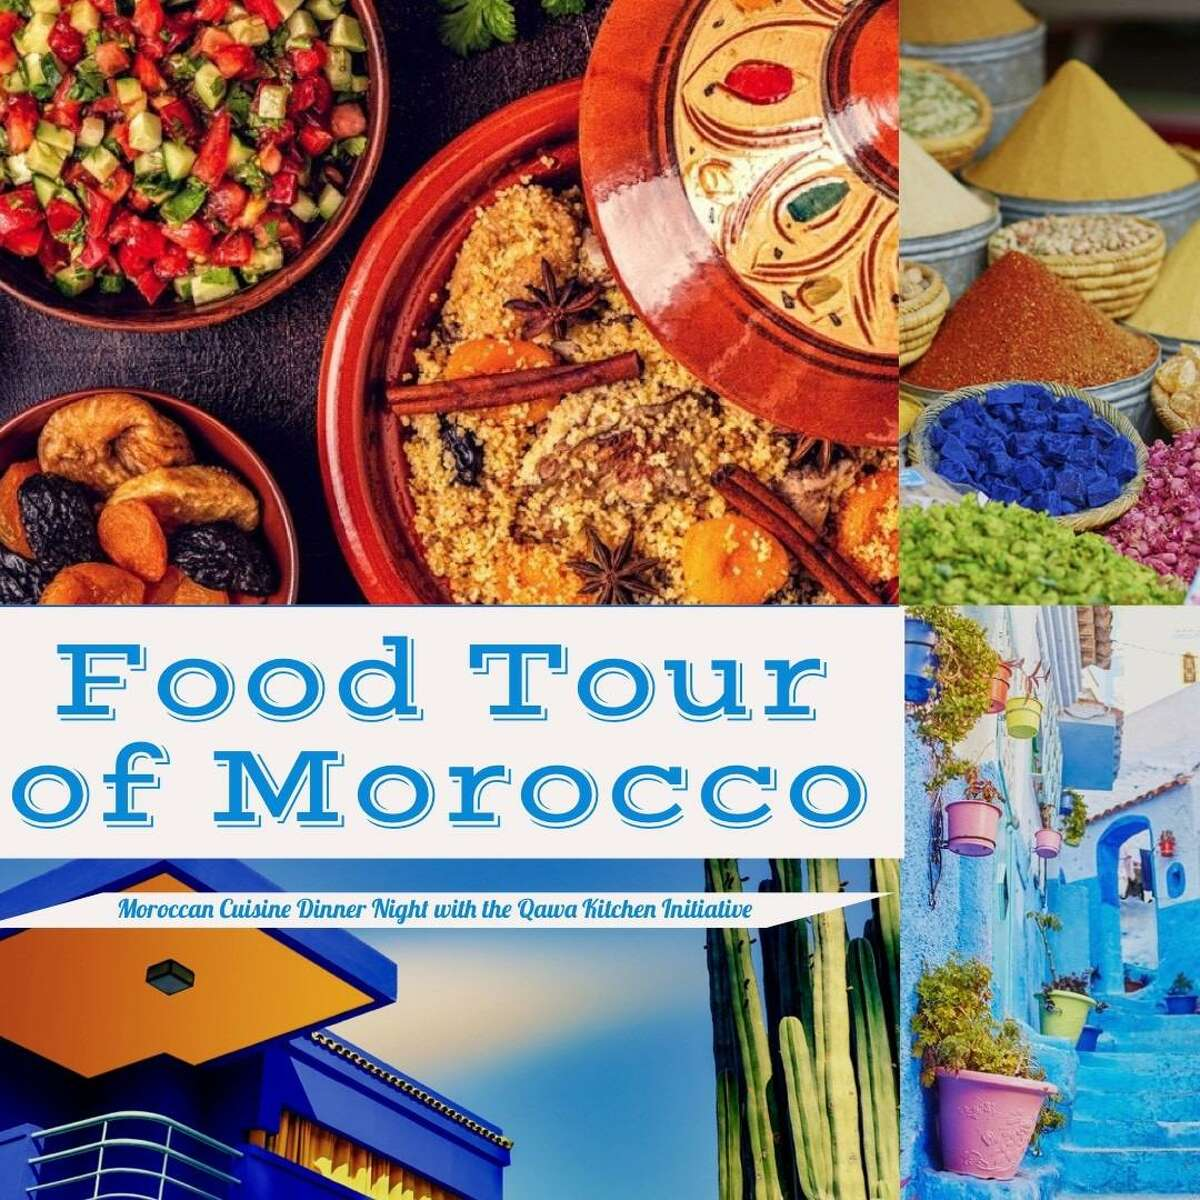 In July, the Qawa Kitchen Initiative is dedicated to spreading awareness of food insecurity and poverty in the Middletown community through its Moroccan Food Tour.